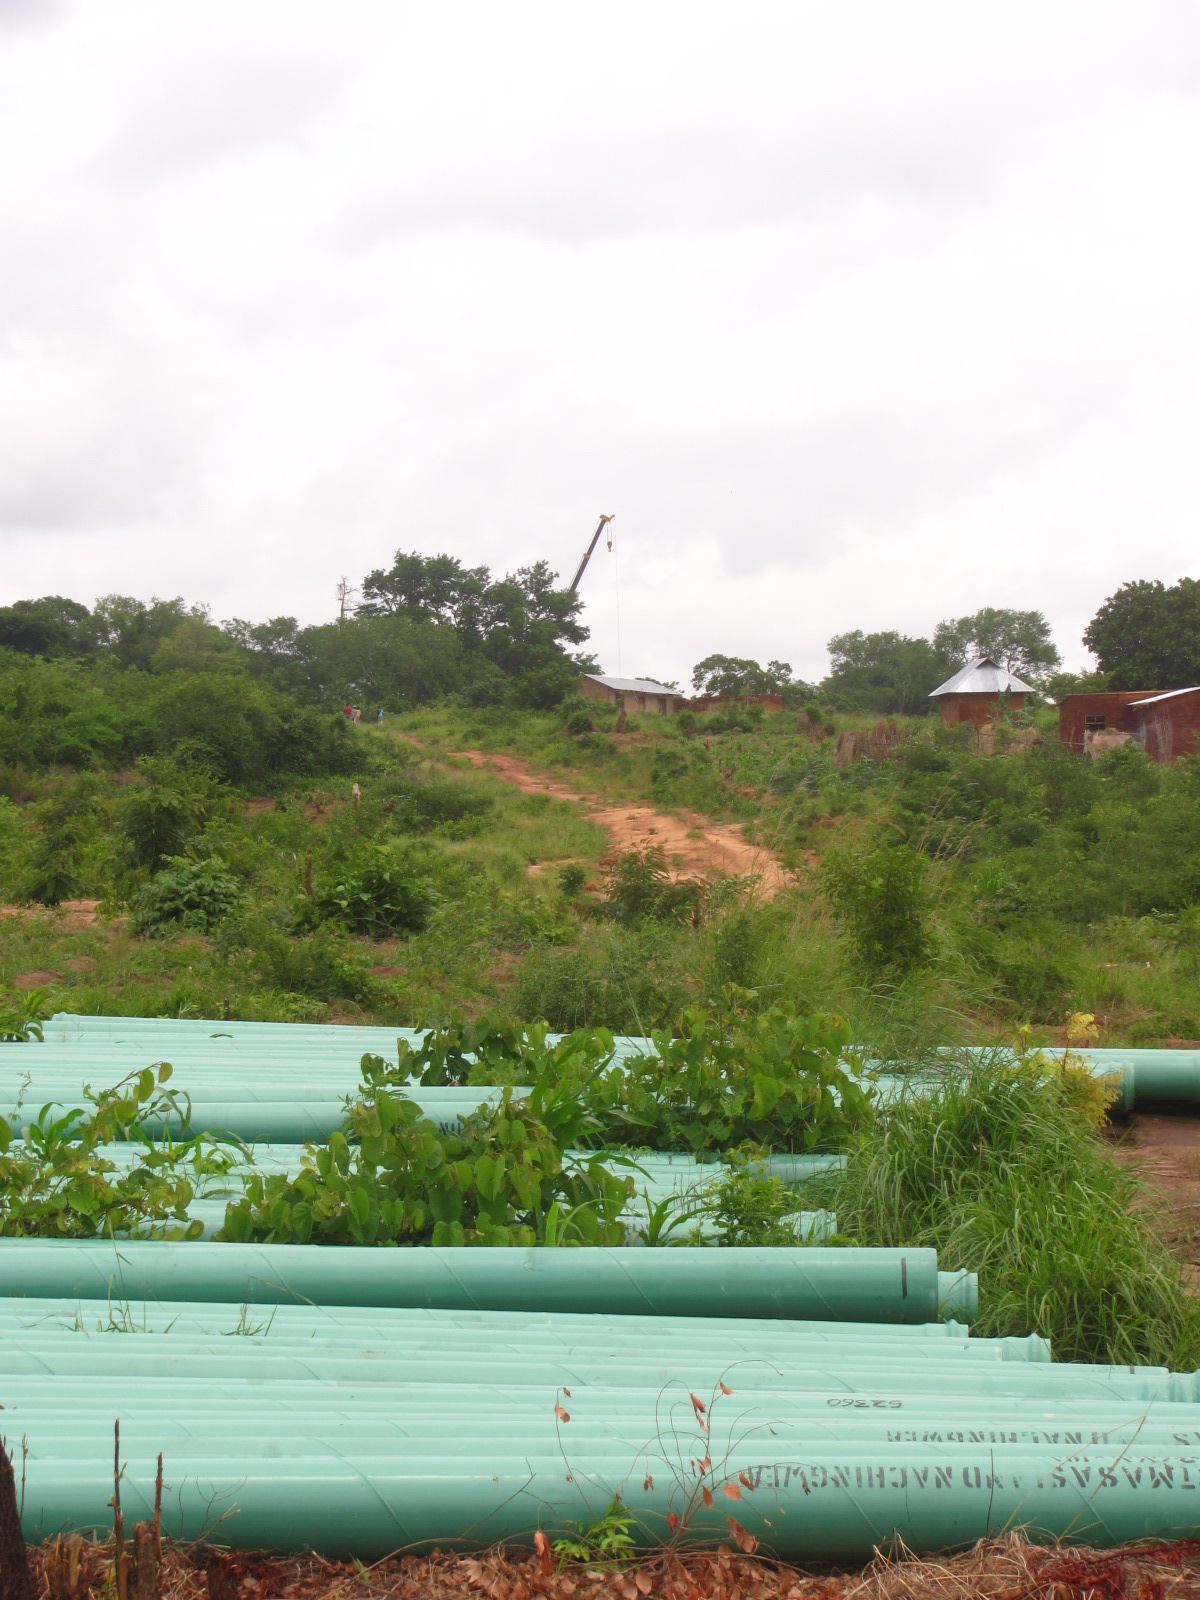 Water Pipes for Masasi town